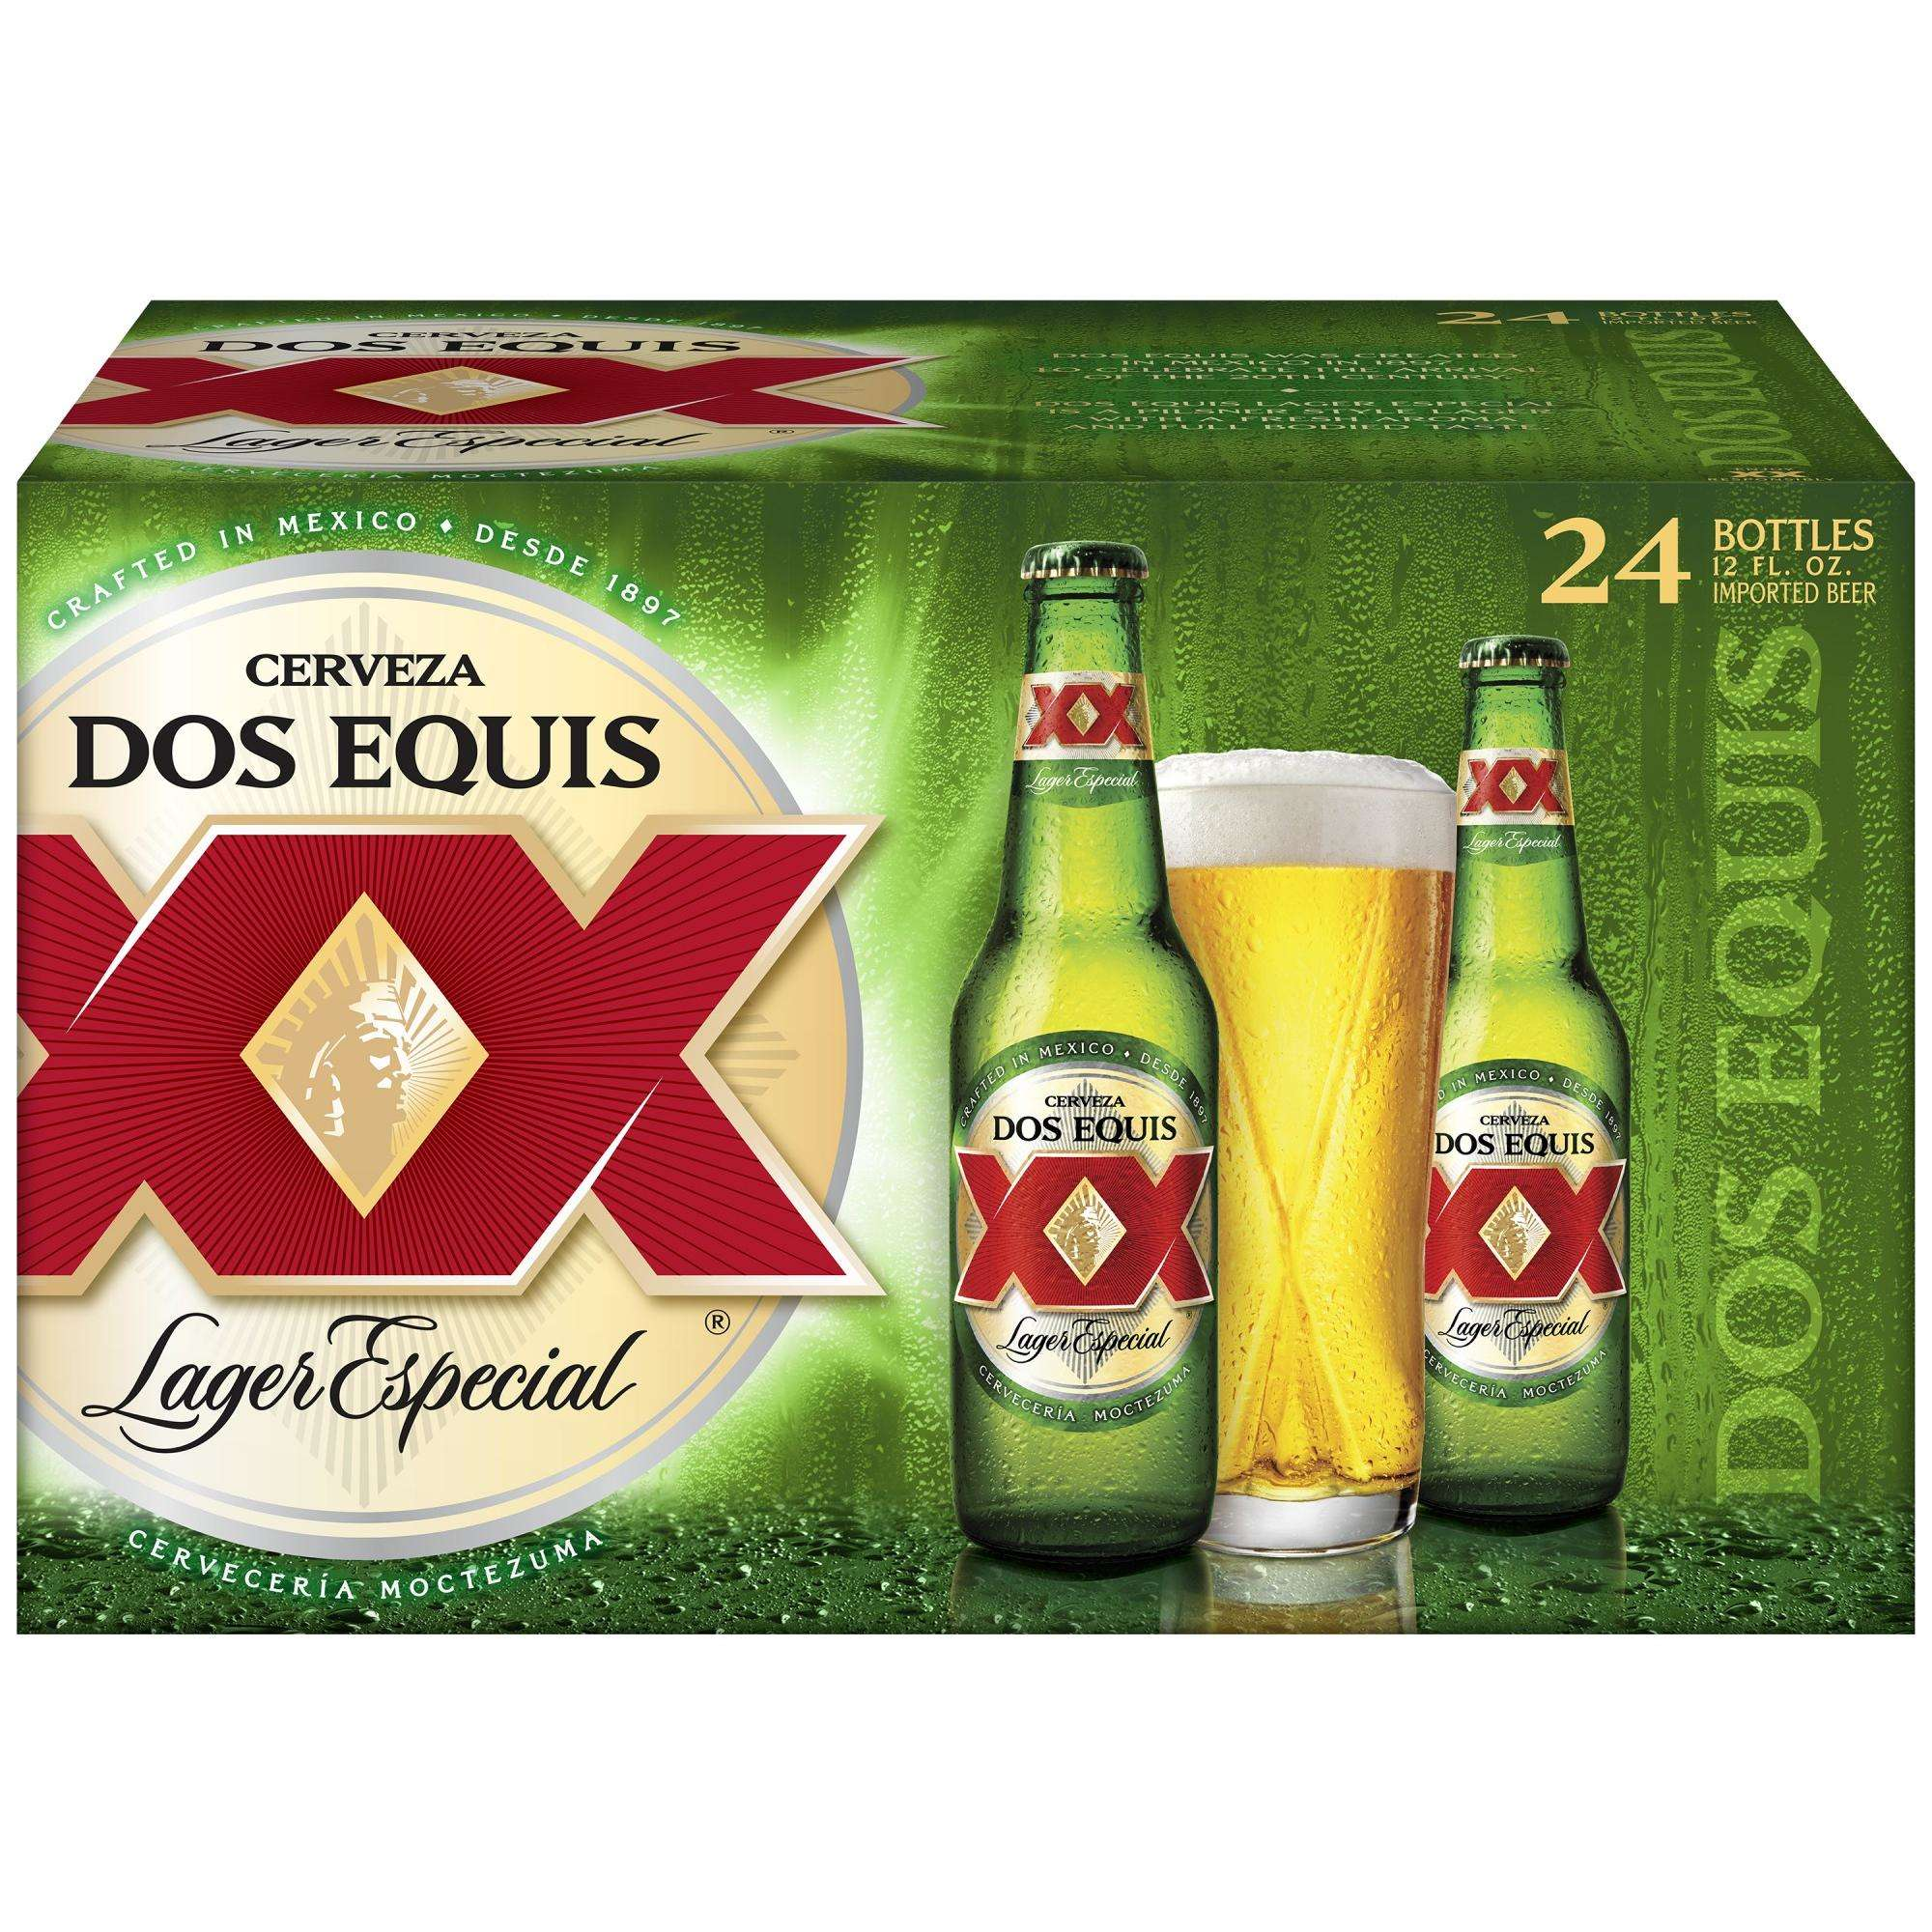 Cerveza Dos Equis Lager Especial Mexican Beer, 24-Pack 12 Oz. Bottles